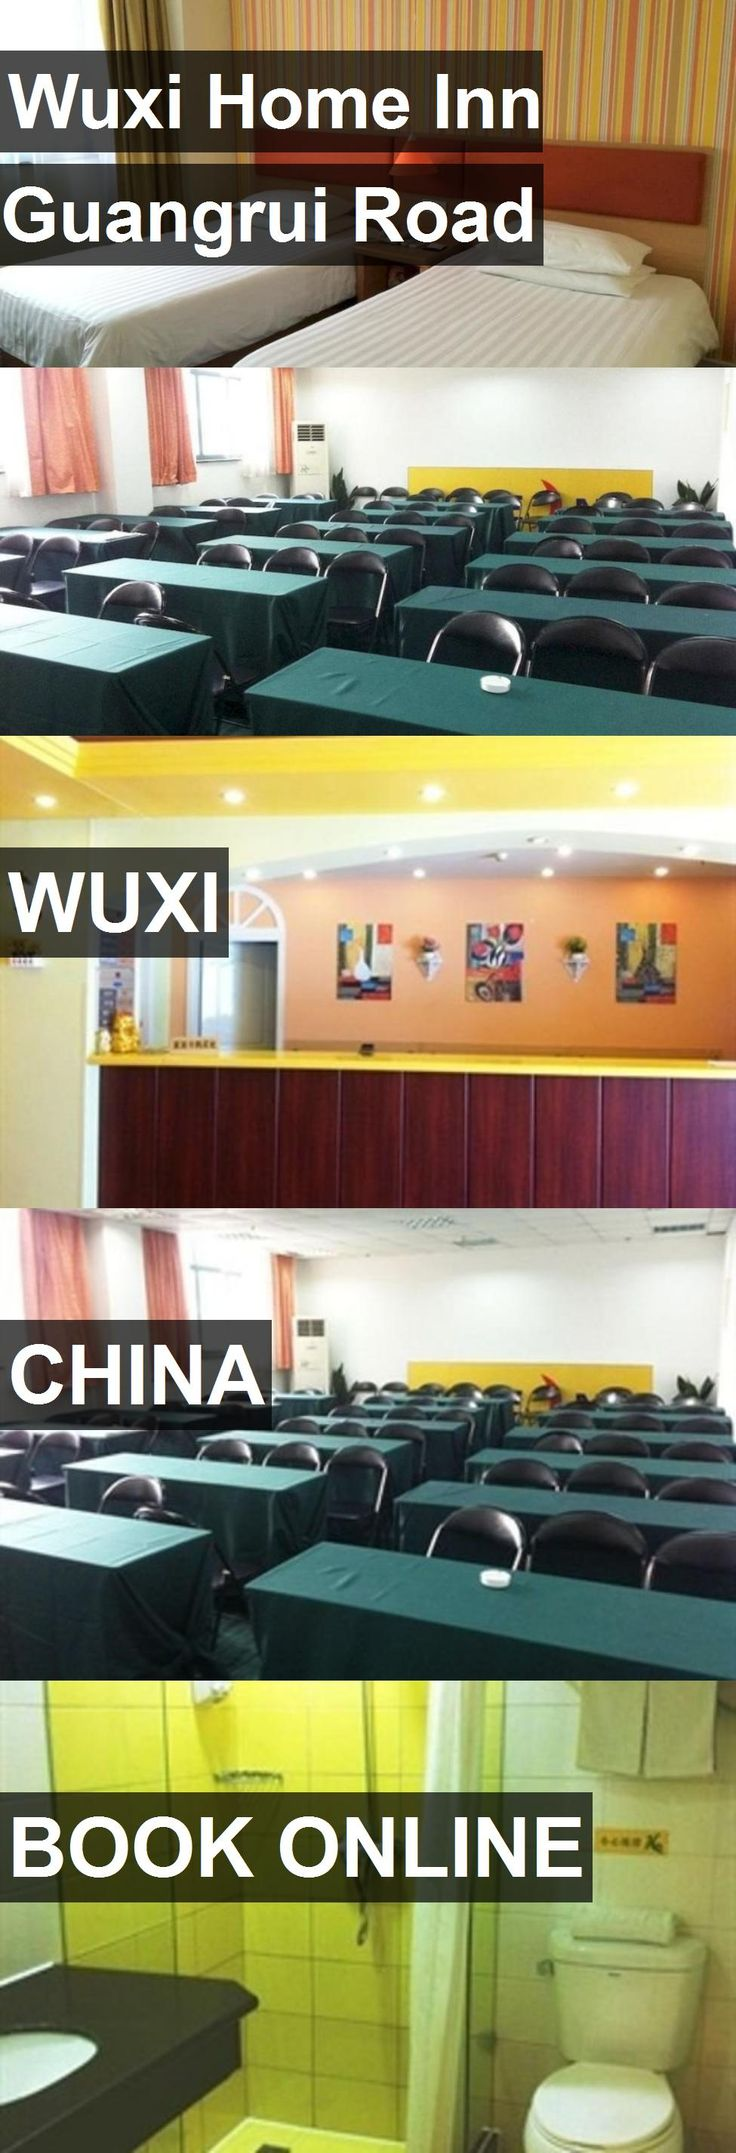 Hotel Wuxi Home Inn Guangrui Road in Wuxi, China. For more information, photos, reviews and best prices please follow the link. #China #Wuxi #travel #vacation #hotel